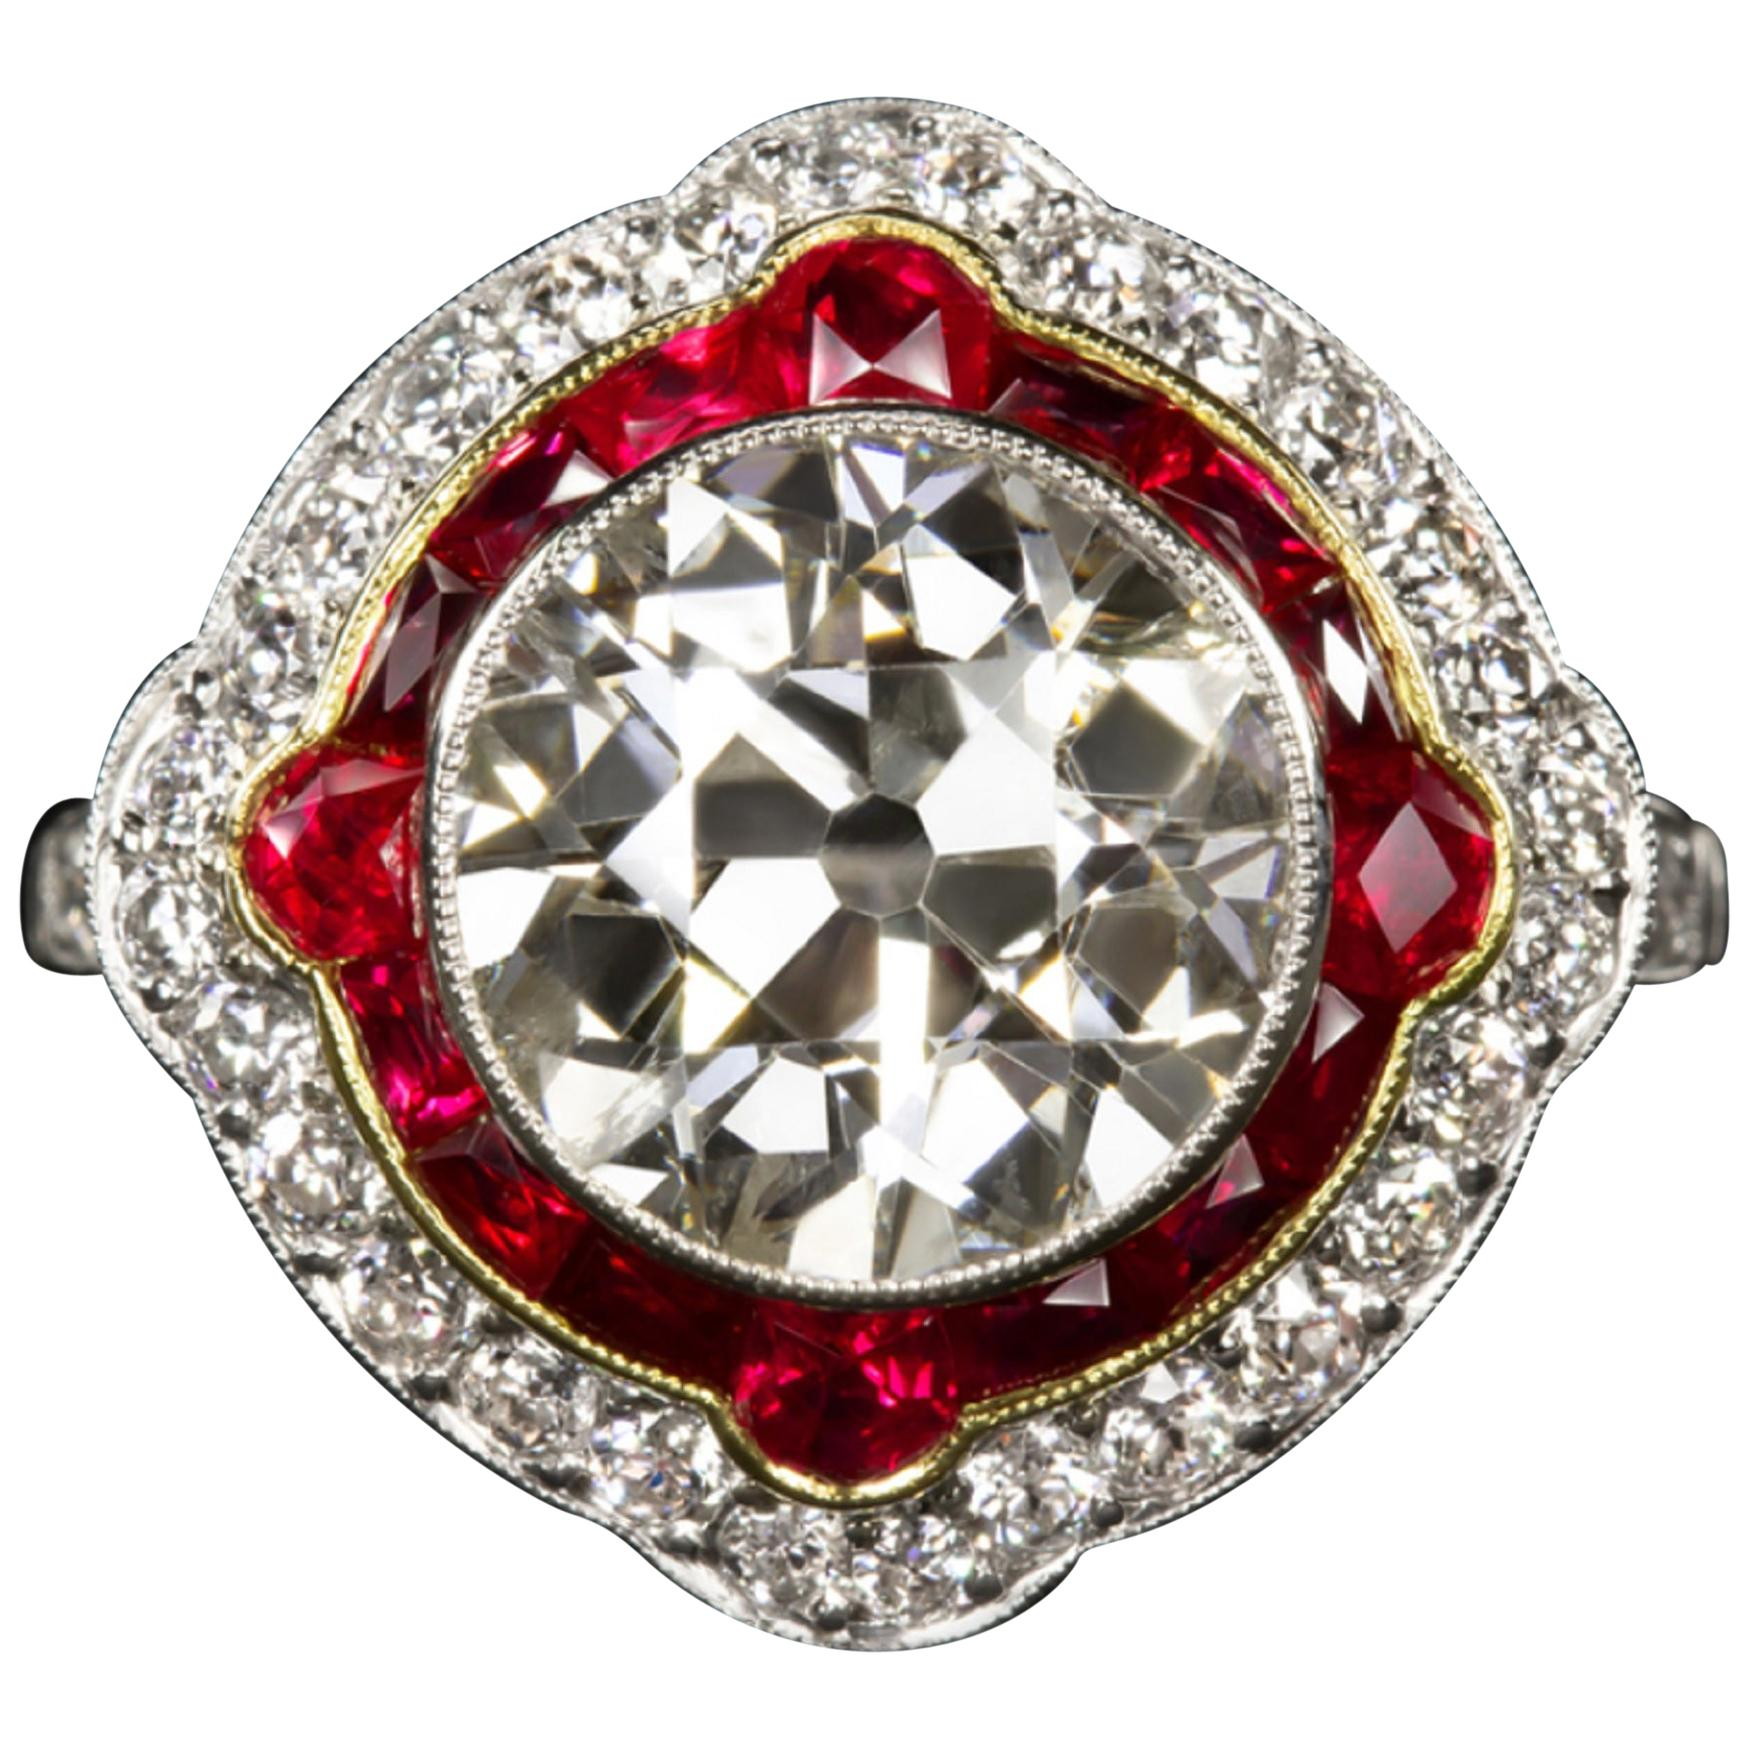 EGL Certified Authentic Art Deco 4 Carat Old Diamond Rubies Cocktail Ring